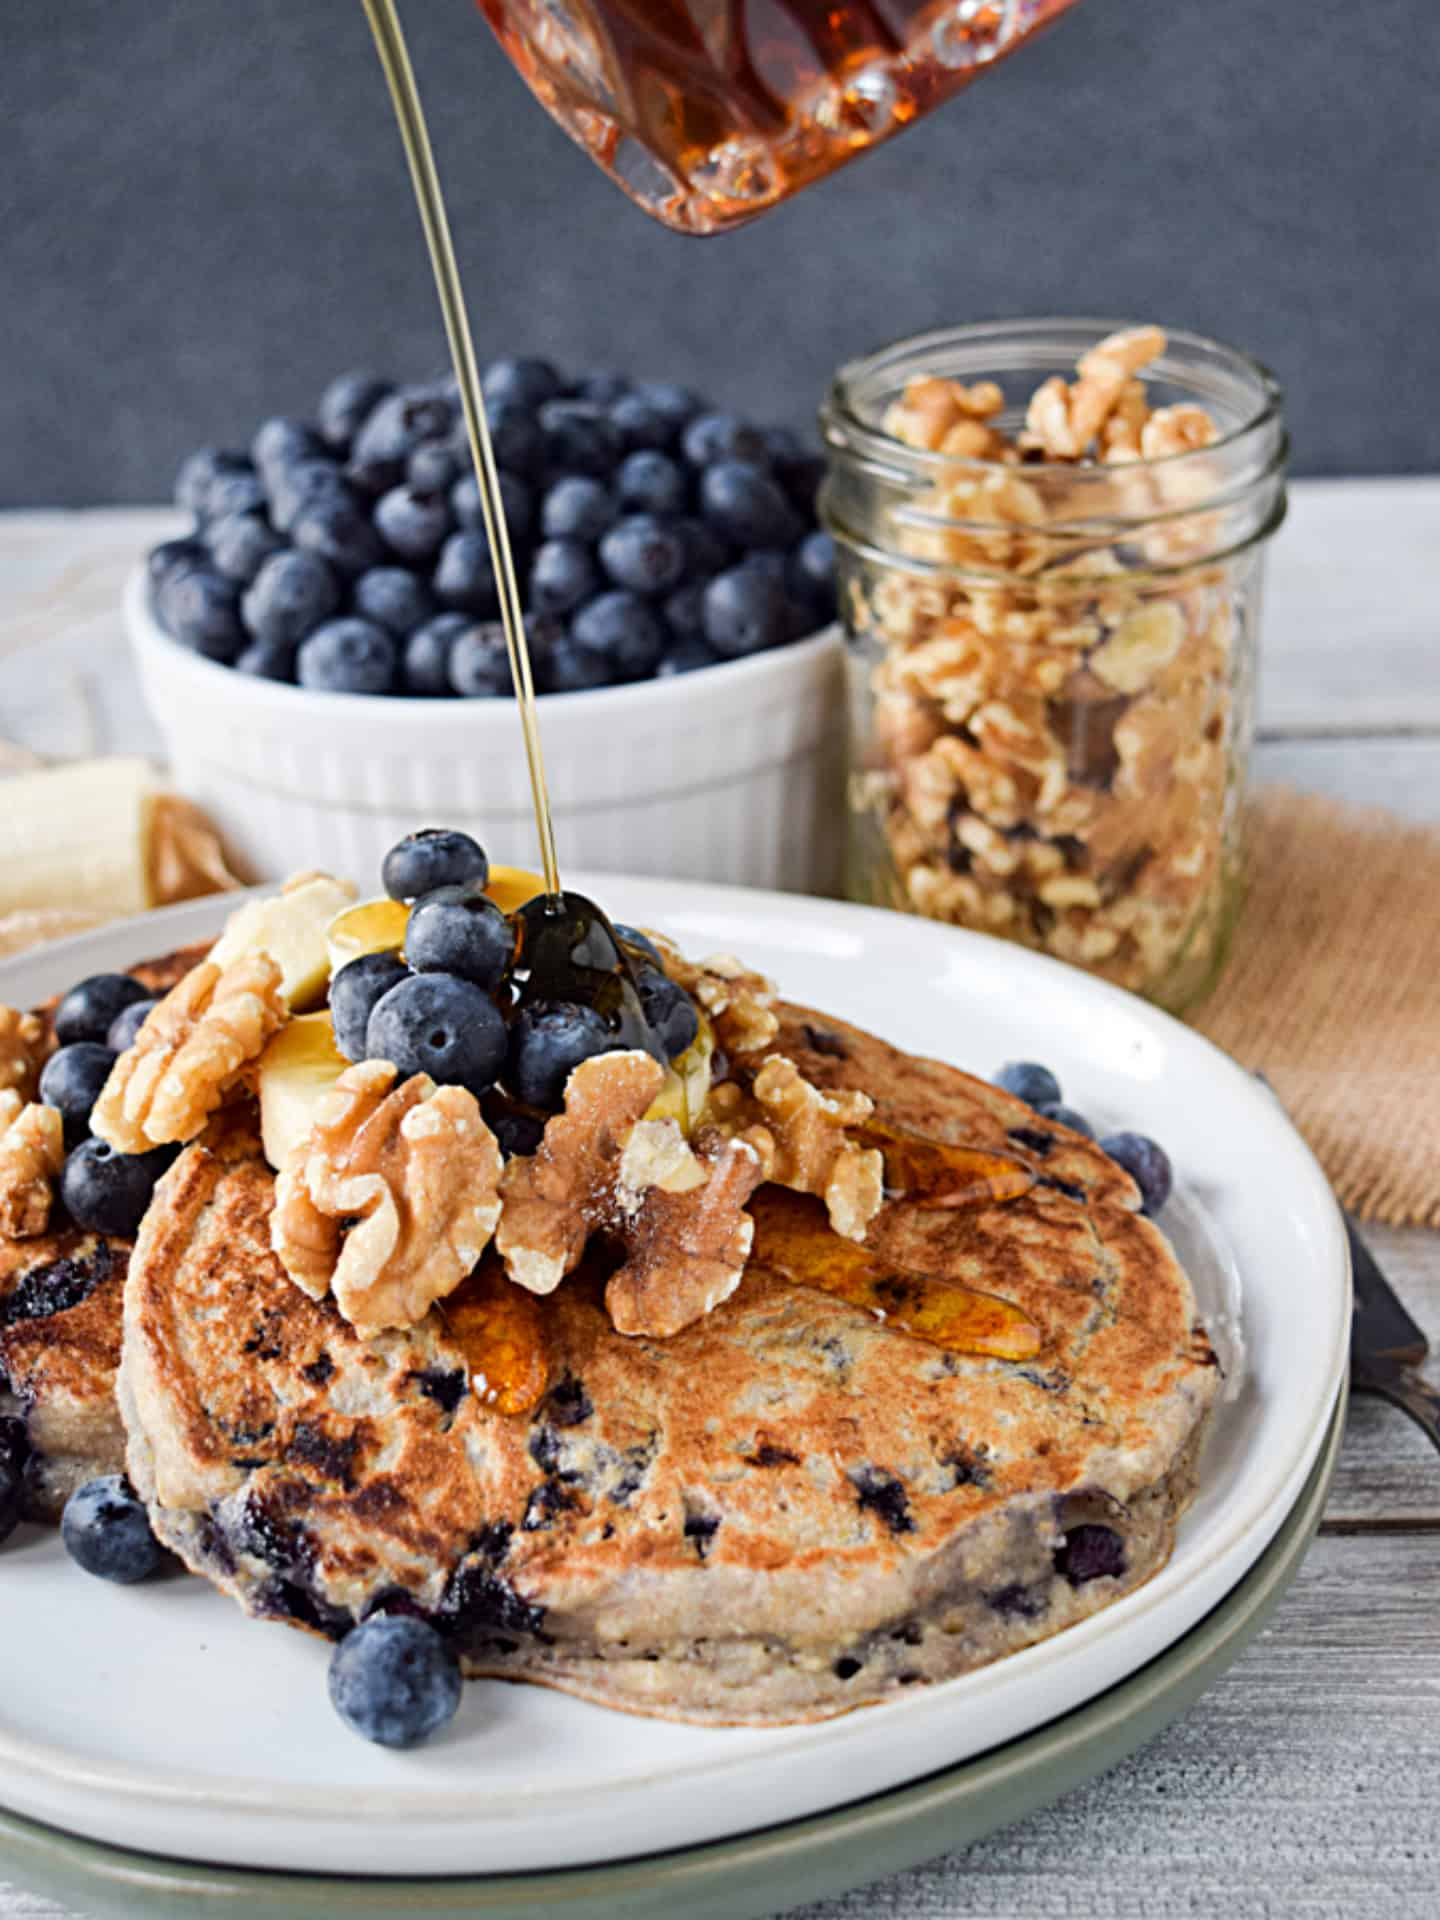 Maple syrup over blueberry pancakes with bananas and walnuts.